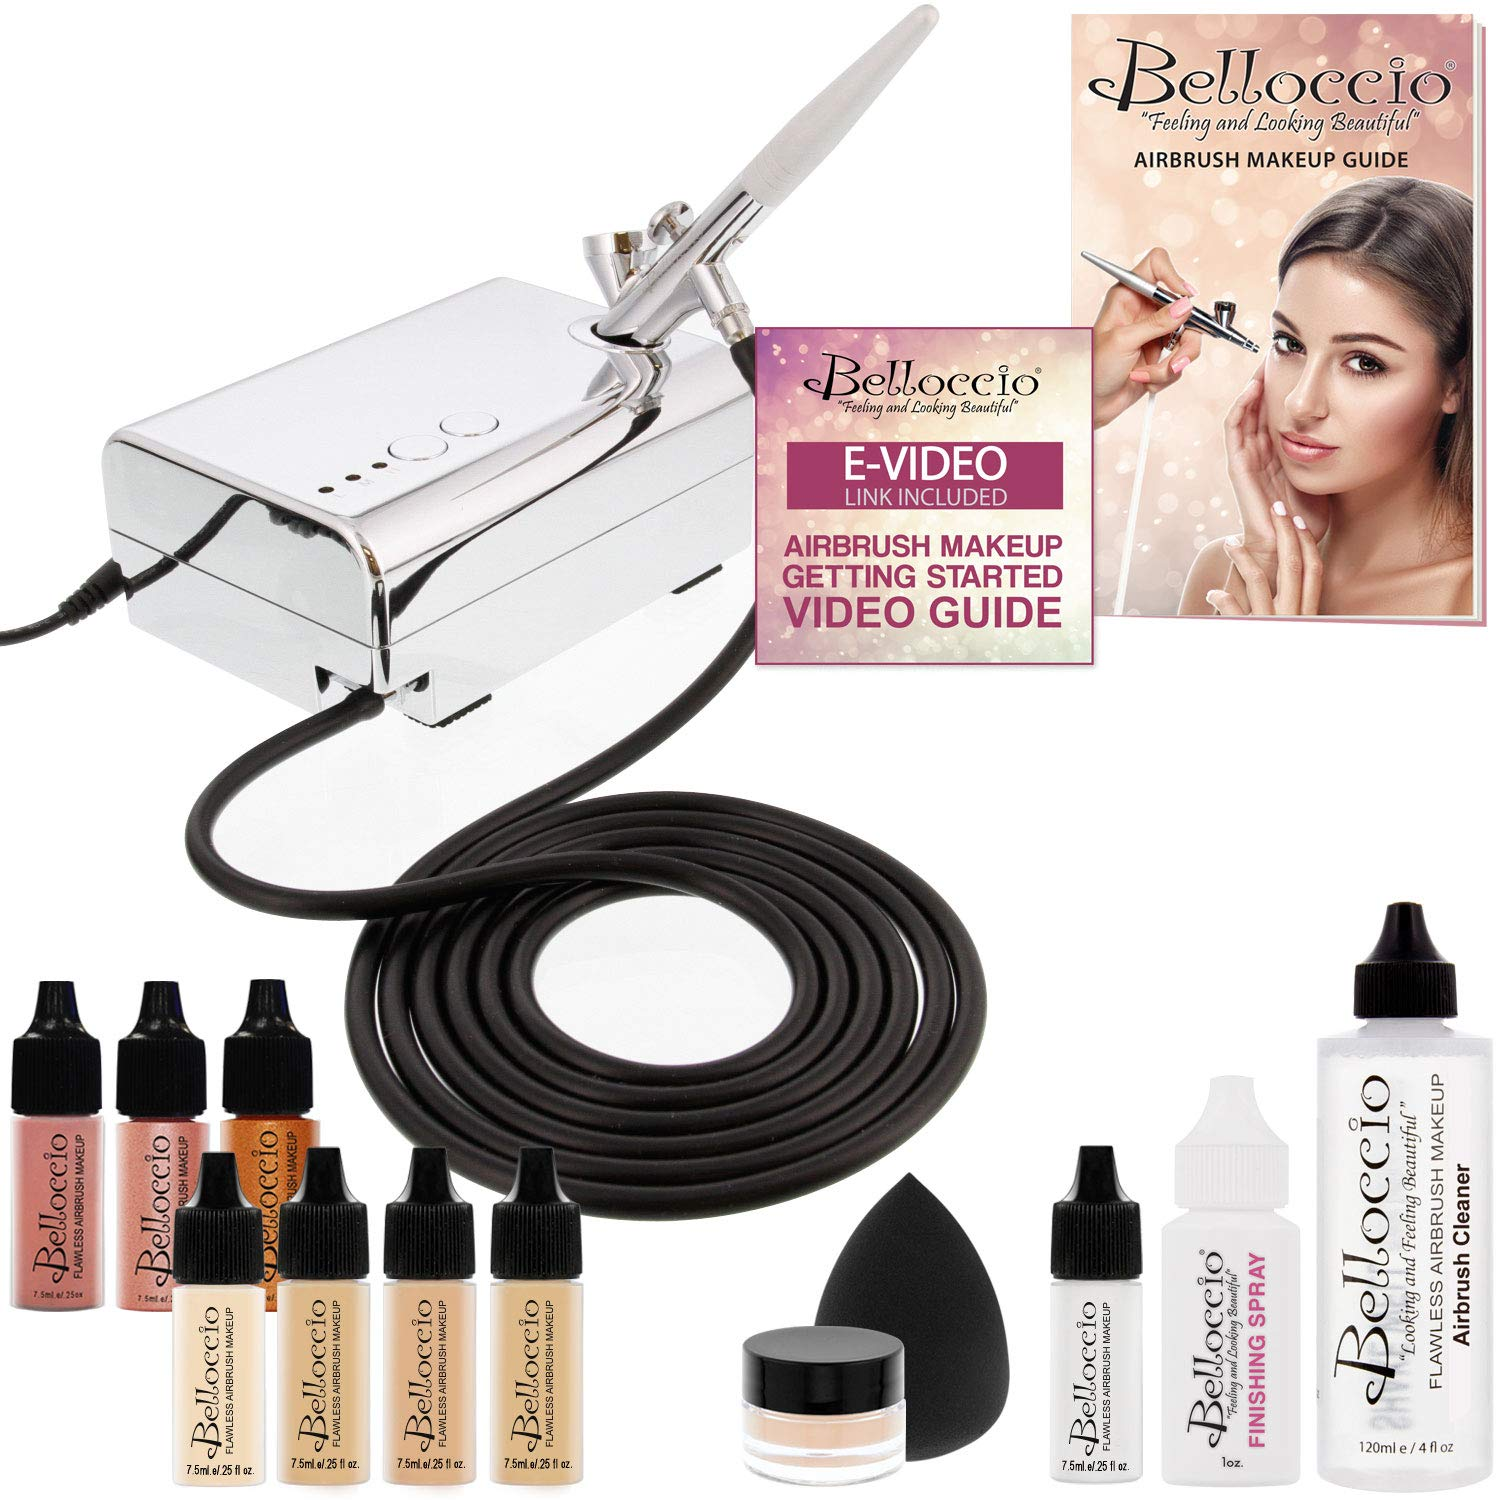 Belloccio Professional Beauty Airbrush Cosmetic Makeup System with 4 Fair Shades of Foundation in 1/4 Ounce Bottles - Kit Includes Blush, Bronzer and Highlighter and 3 Bonus Items and Video Link